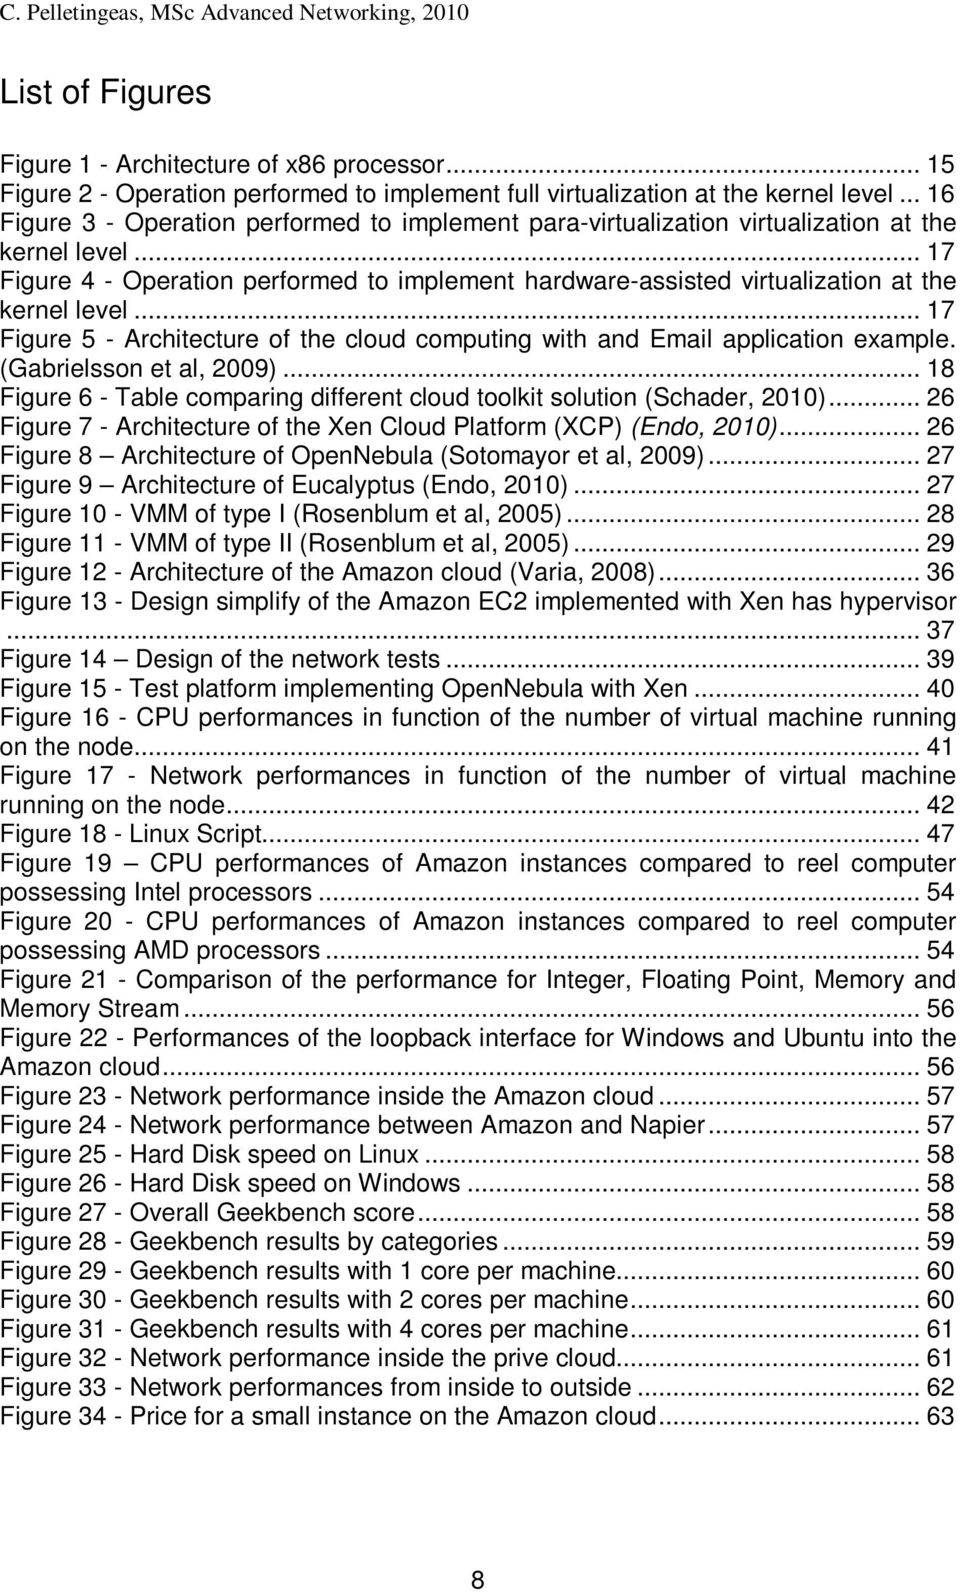 .. 17 Figure 4 - Operation performed to implement hardware-assisted virtualization at the kernel level... 17 Figure 5 - Architecture of the cloud computing with and Email application example.